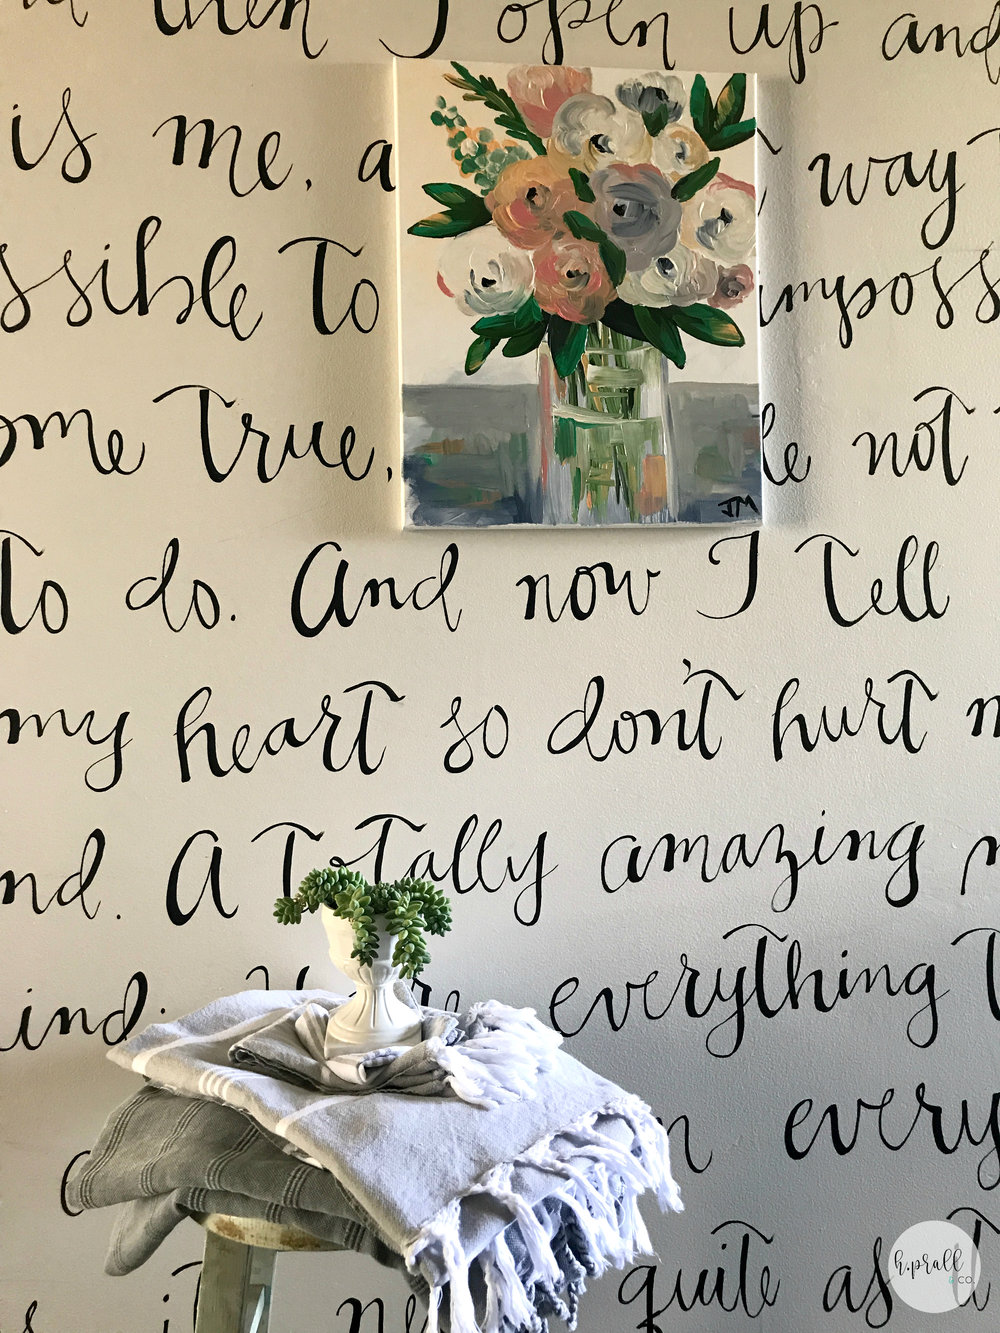 Folded up Turkish towels on a stool in front of a wall with hand painted song lyrics via  H.Prall & Co.